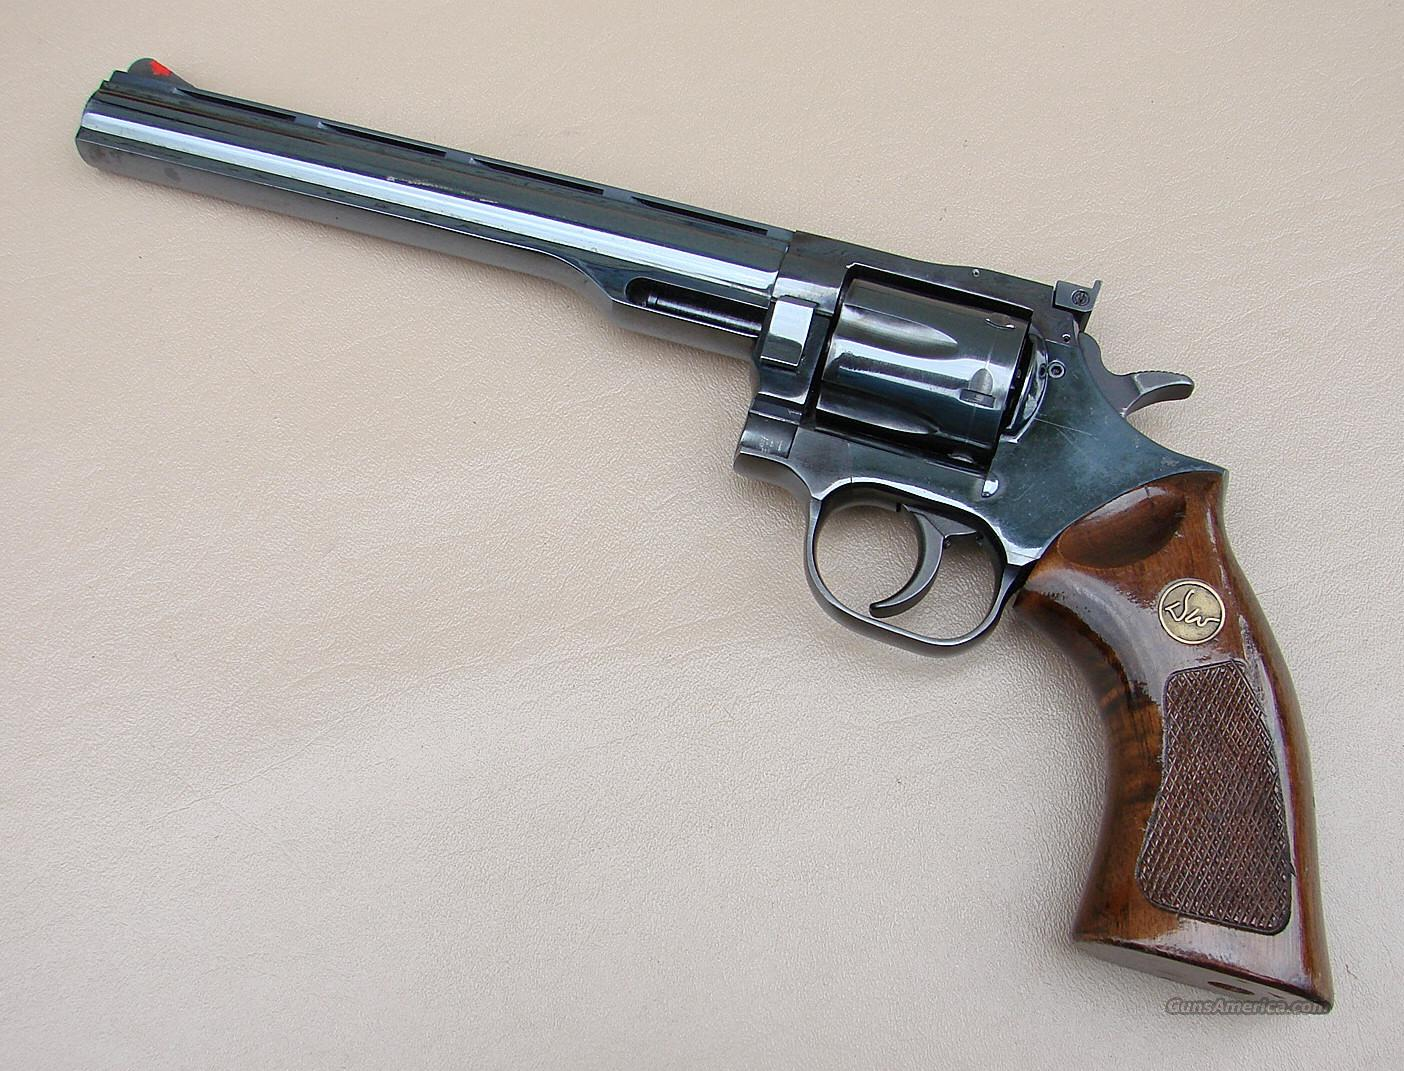 Dan Wesson 357 Magnum Revolver with an 8 Inch Barrel  Guns > Pistols > Dan Wesson Pistols/Revolvers > Revolvers